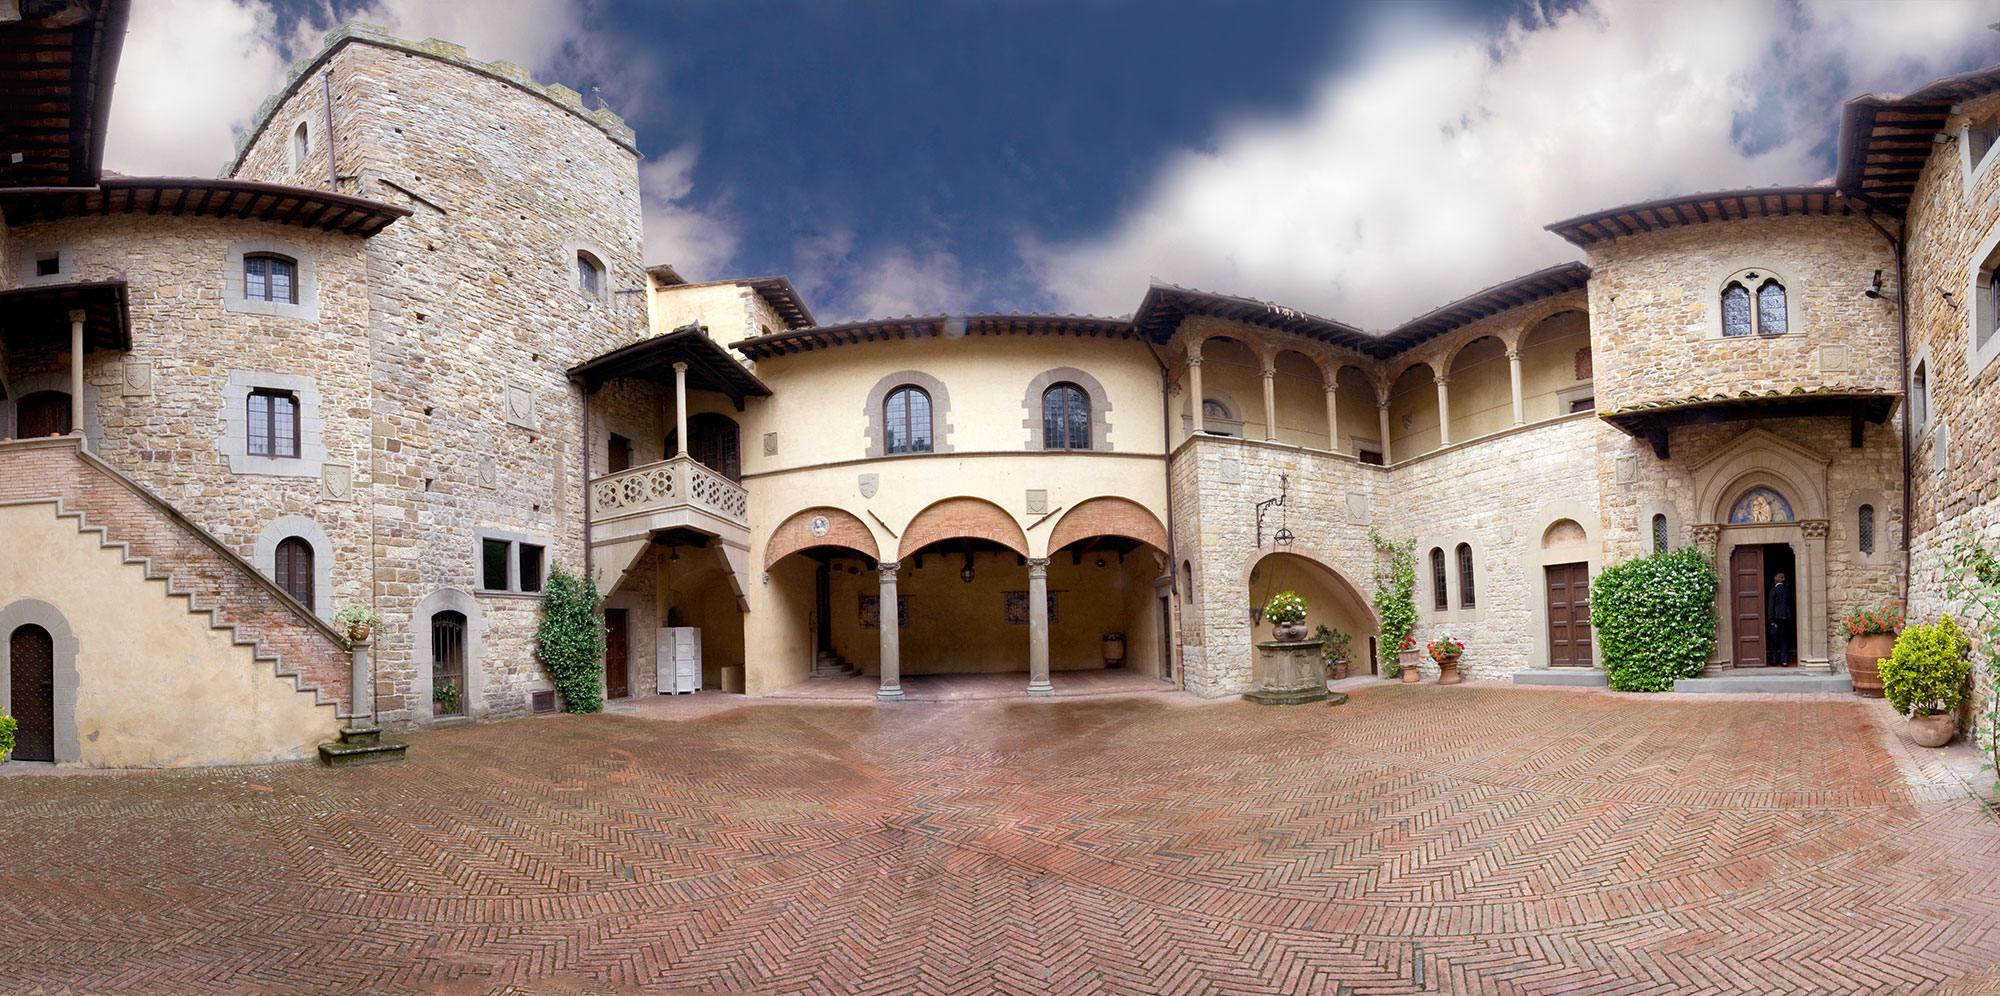 A Medieval Castle for You, in the Heart of Chianti</p><p><a class='btn btn-default' href='castle/'>Read more</a>